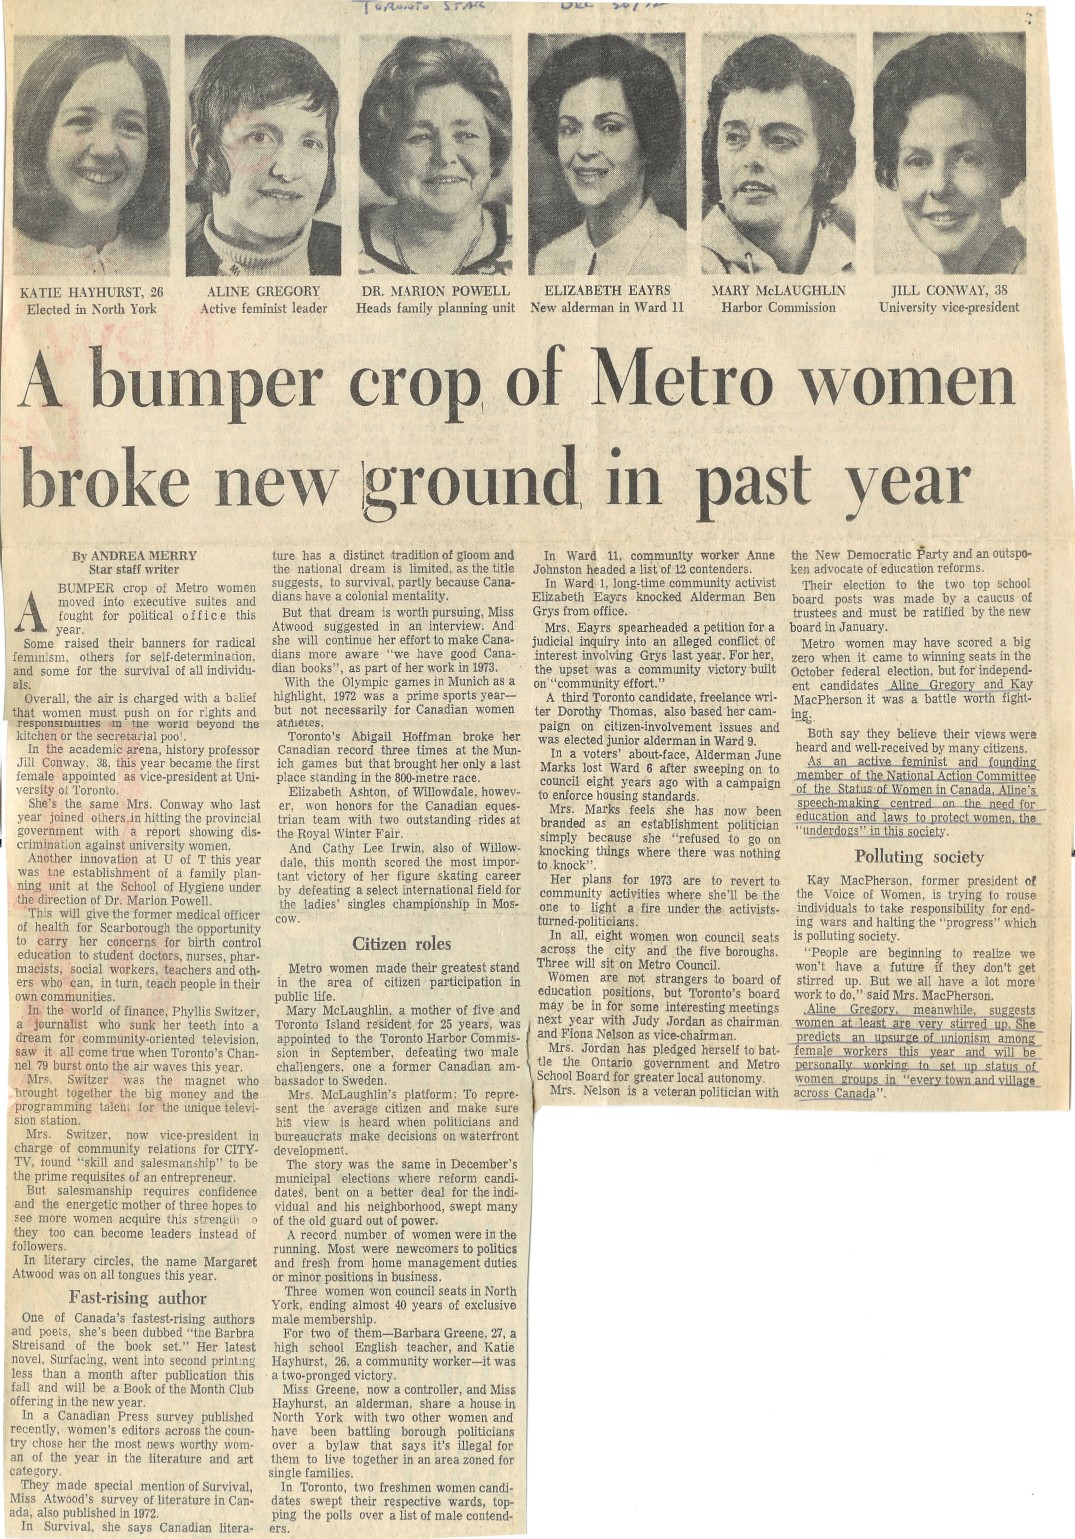 A bumper crop of Metro women broke new ground in past year - Toronto Star, Dec 1972